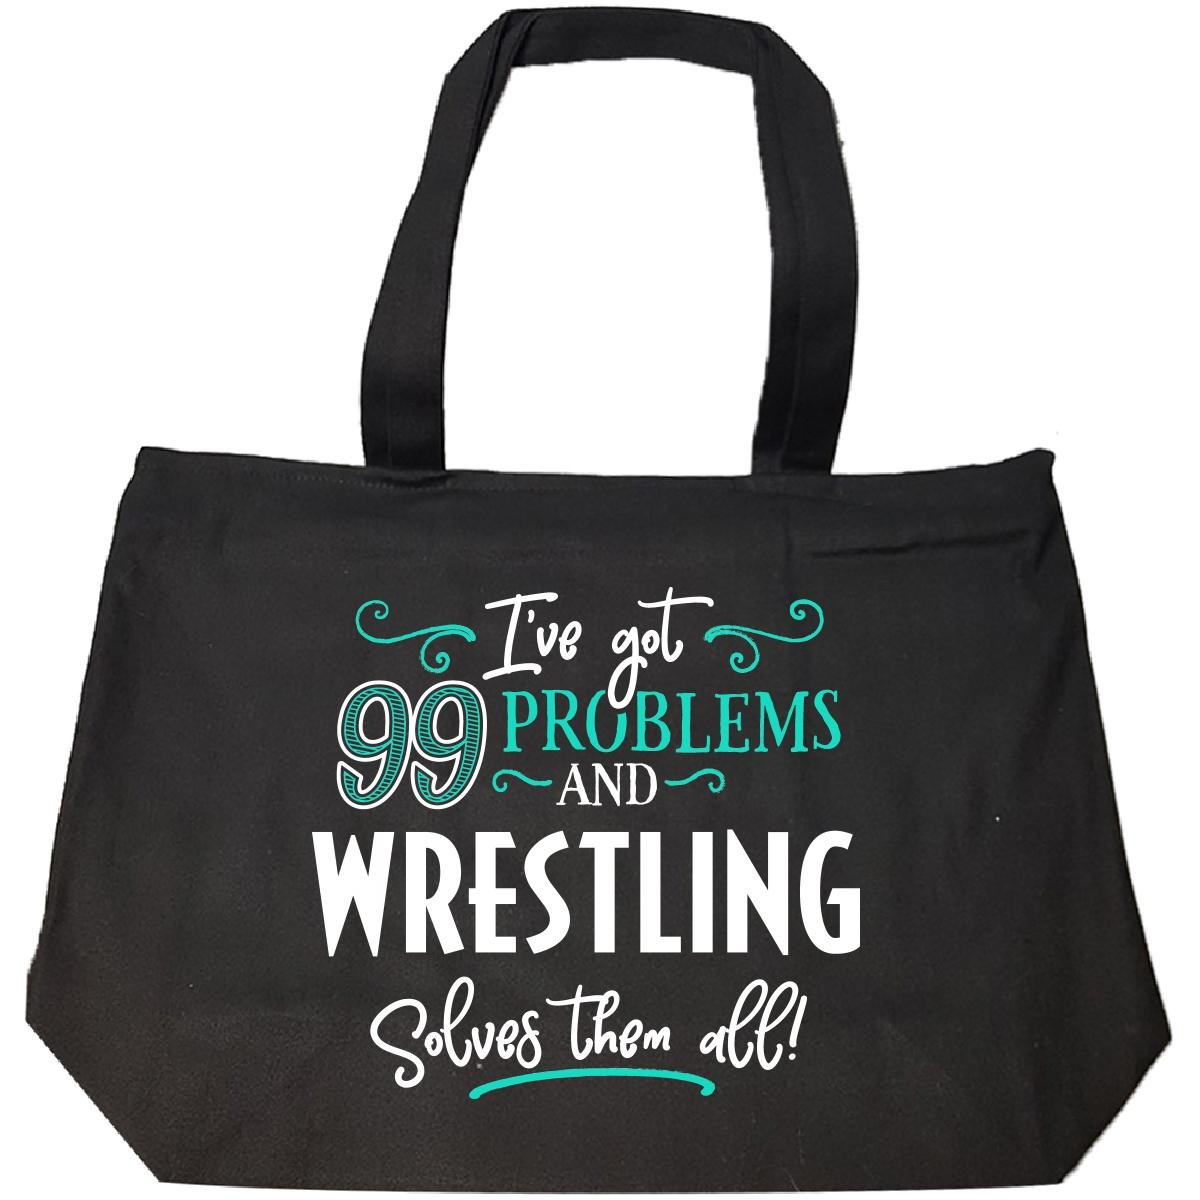 99 Problems Wrestling Solves Them All Gift - Tote Bag With Zip by My Family Tee